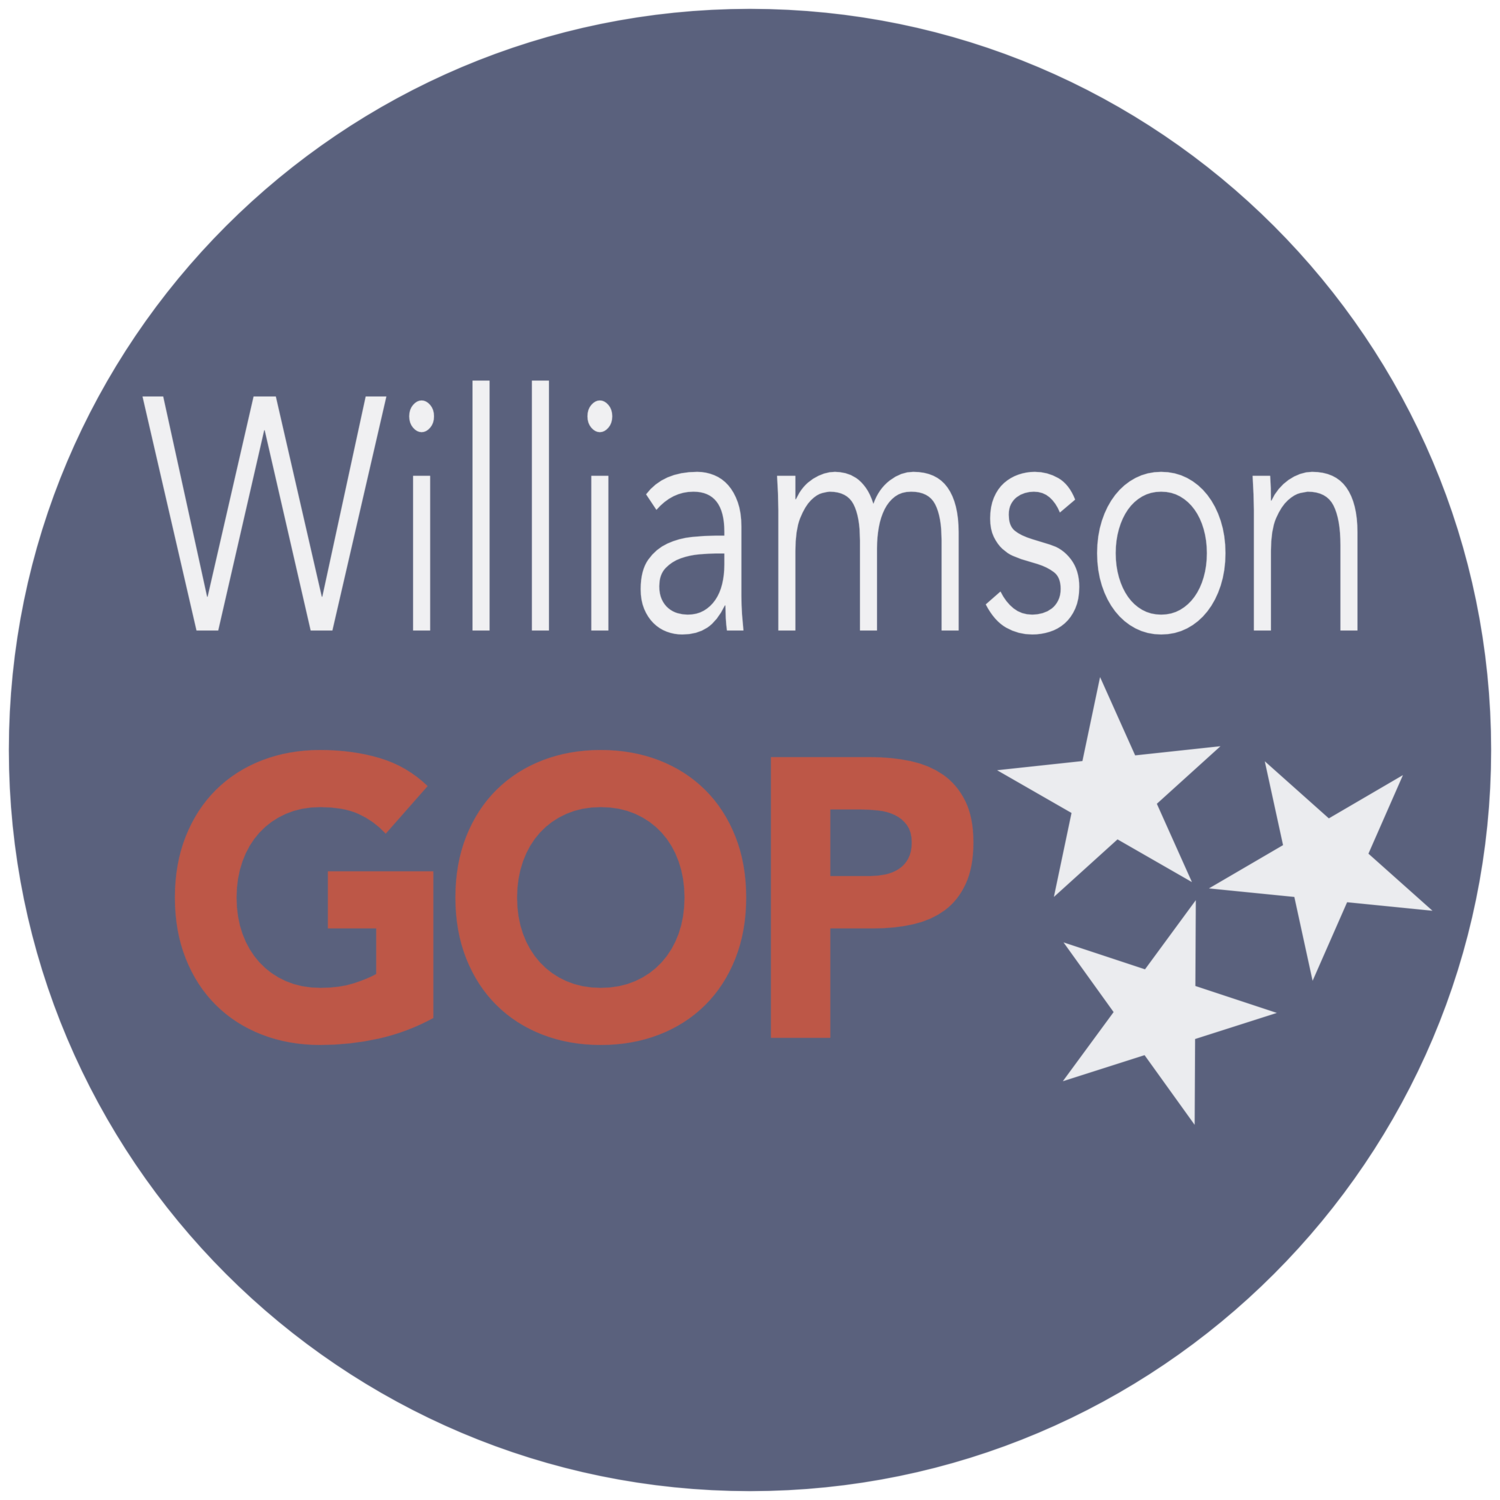 Williamson GOP